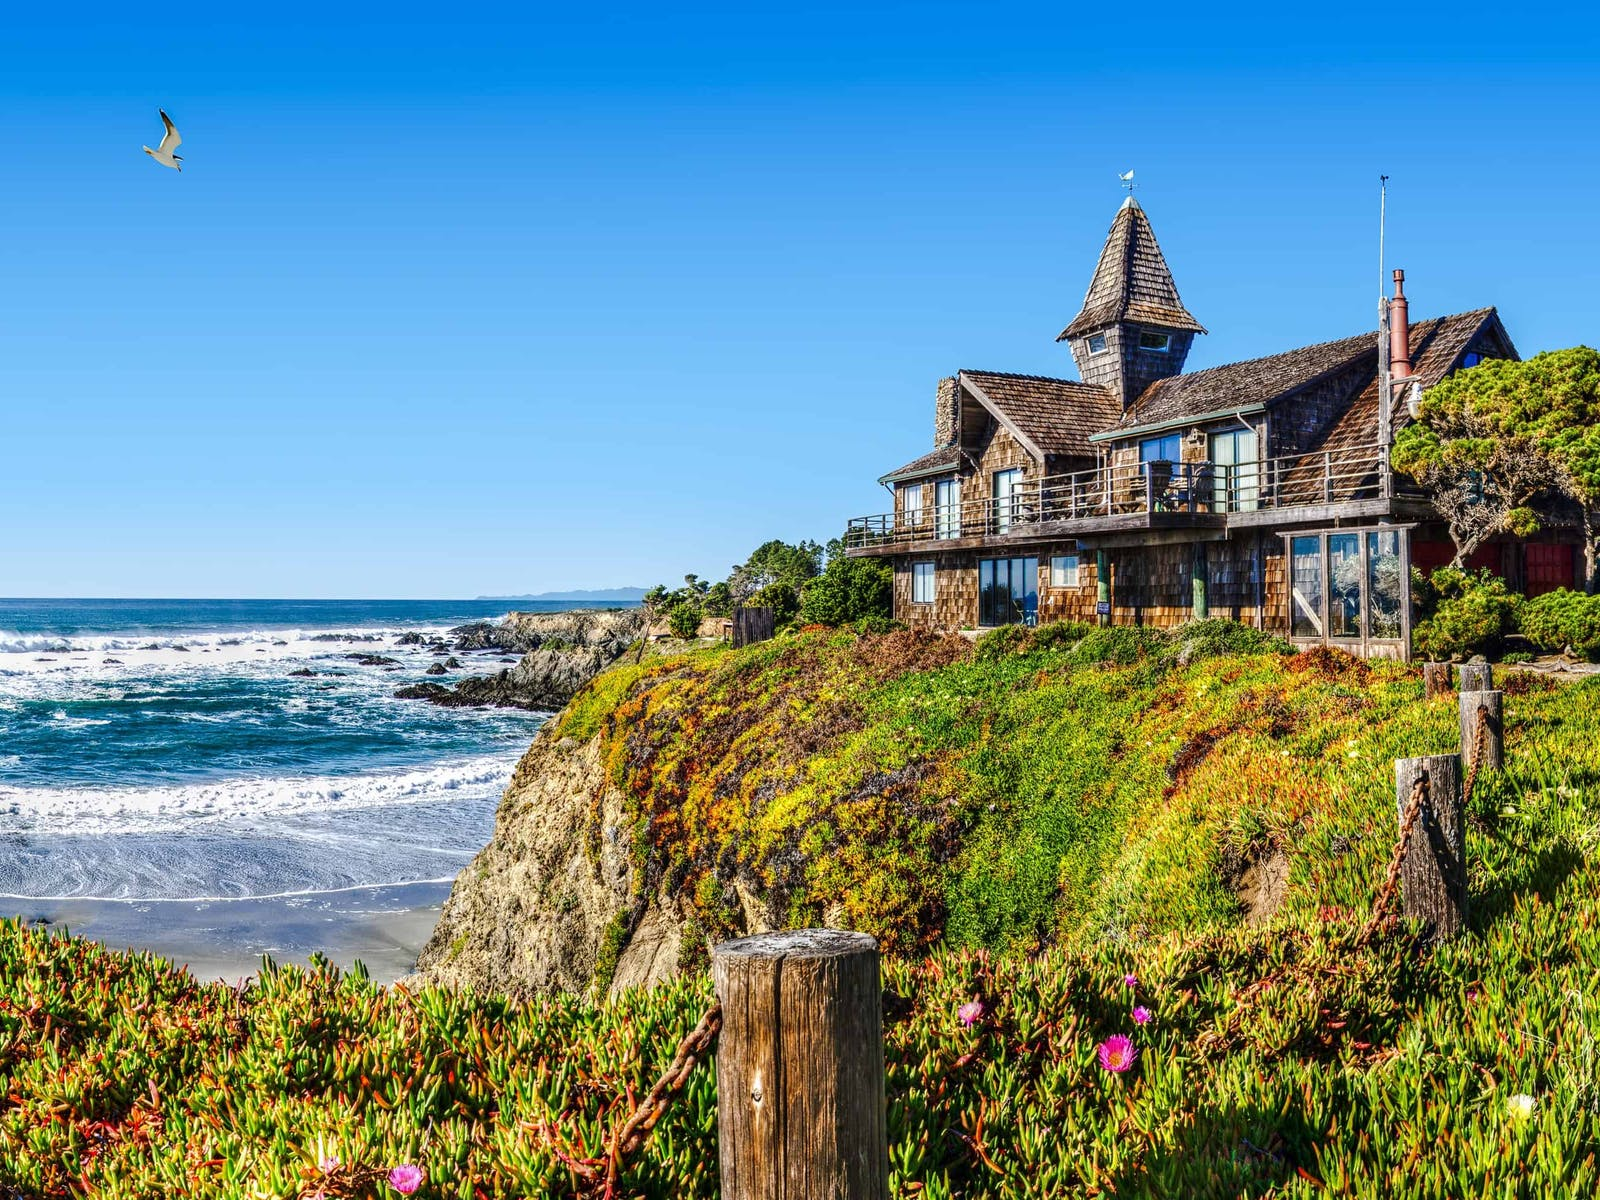 beach house overlooking the ocean on the california coast